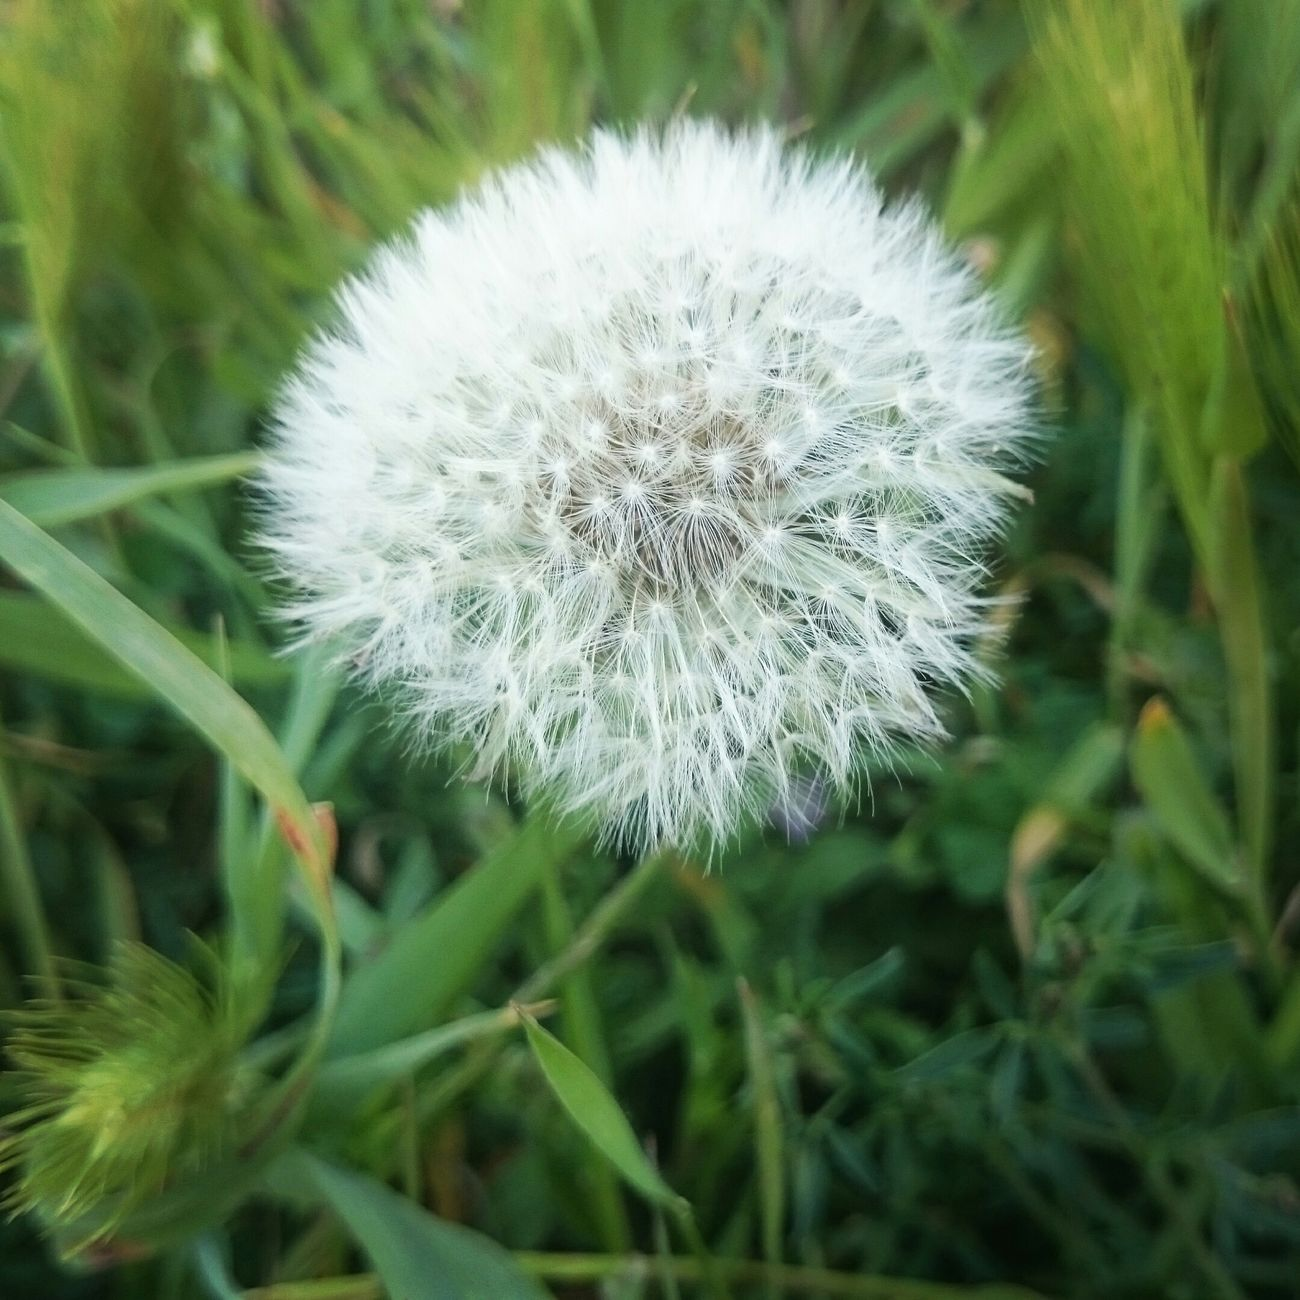 My Dandelion❤ First Eyeem Photo EyeEm Best Shots Eyemphotography EyeEm Nature Lover Eyem Best Shots Nature_collection Eyem Nature Dandelion Collection Dandelion In Spring Dandelion Addiction 💙